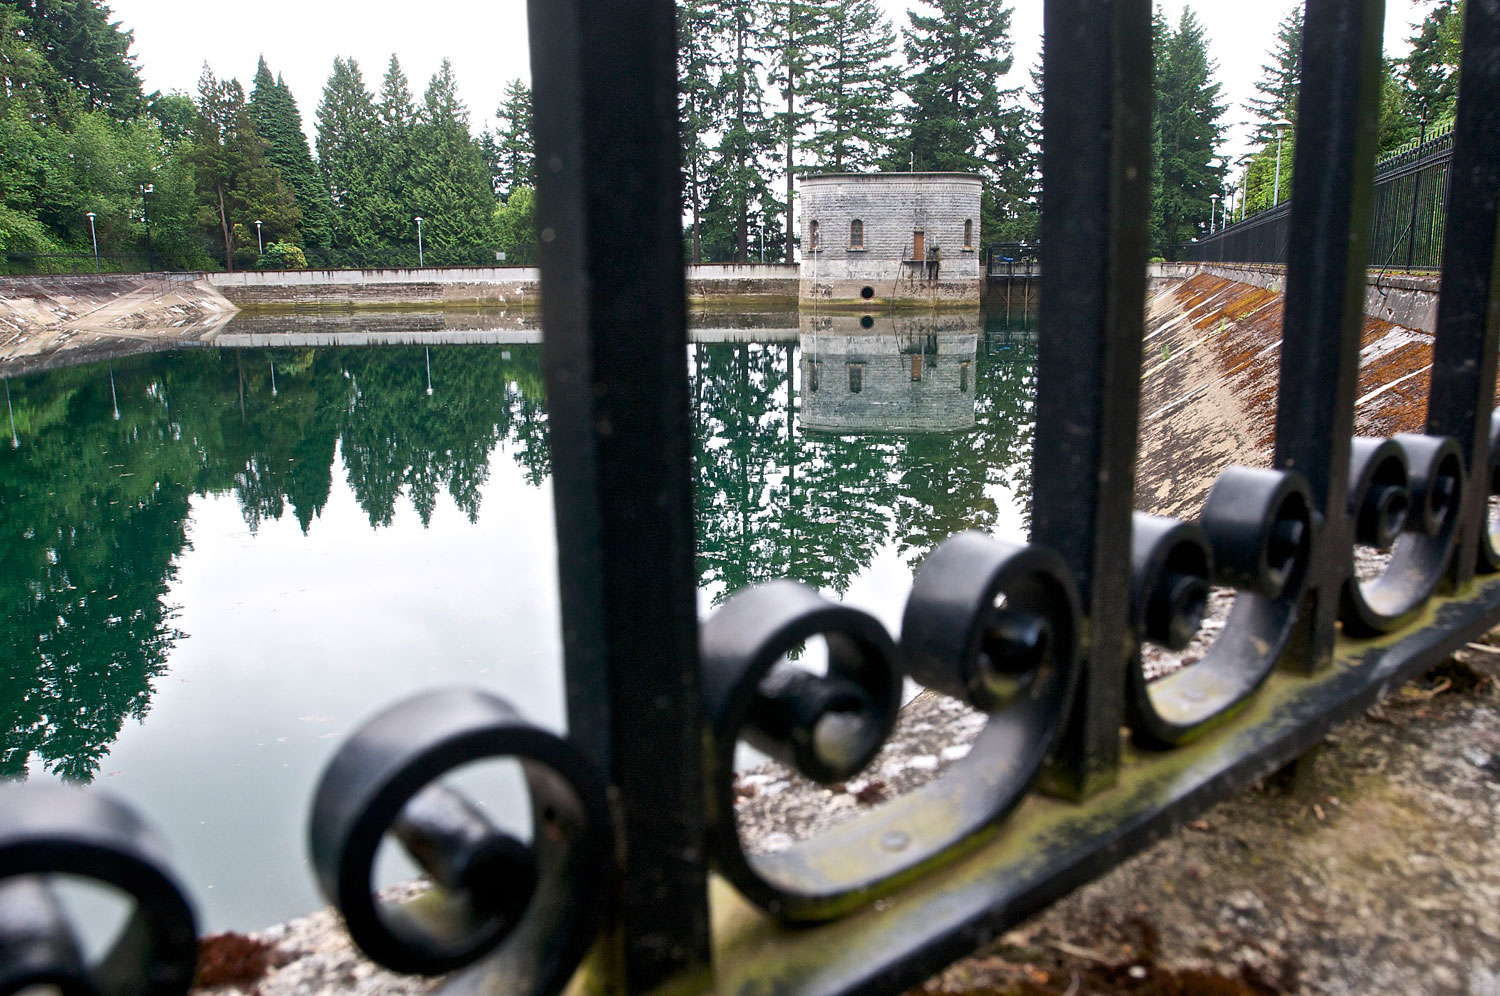 The Mount Tabor number 1 reservoir in Portland, Ore., seen 2011.